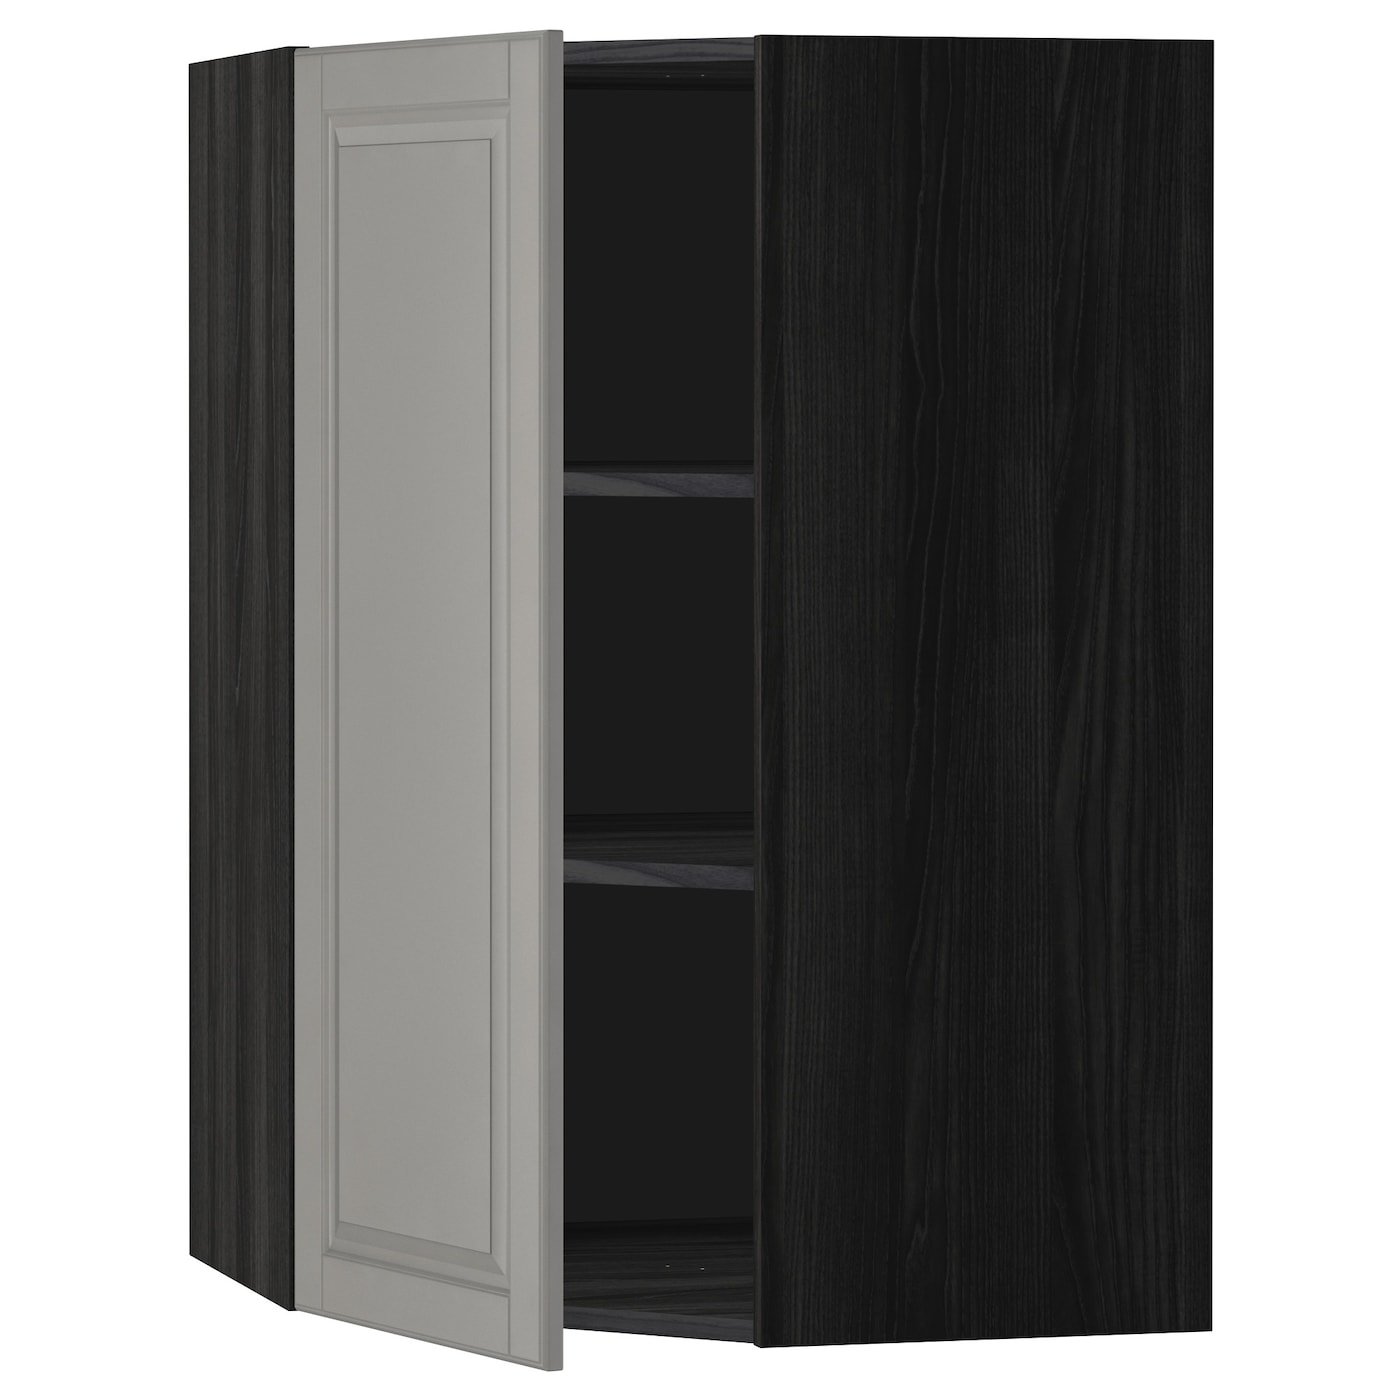 METOD Corner wall cabinet with shelves Black bodbyn grey